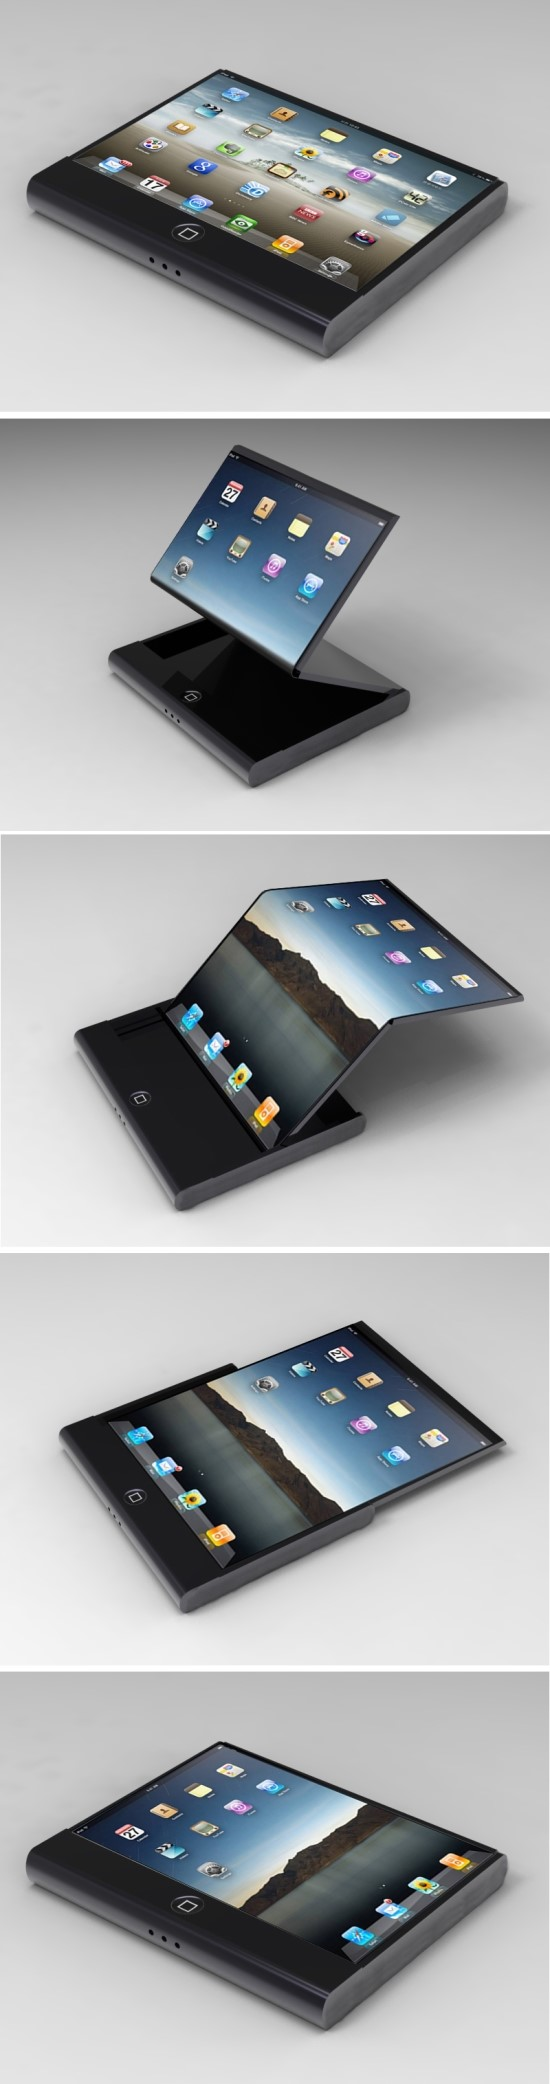 Seamless Flexible Display iPhone Concepts: Ace and Jocker